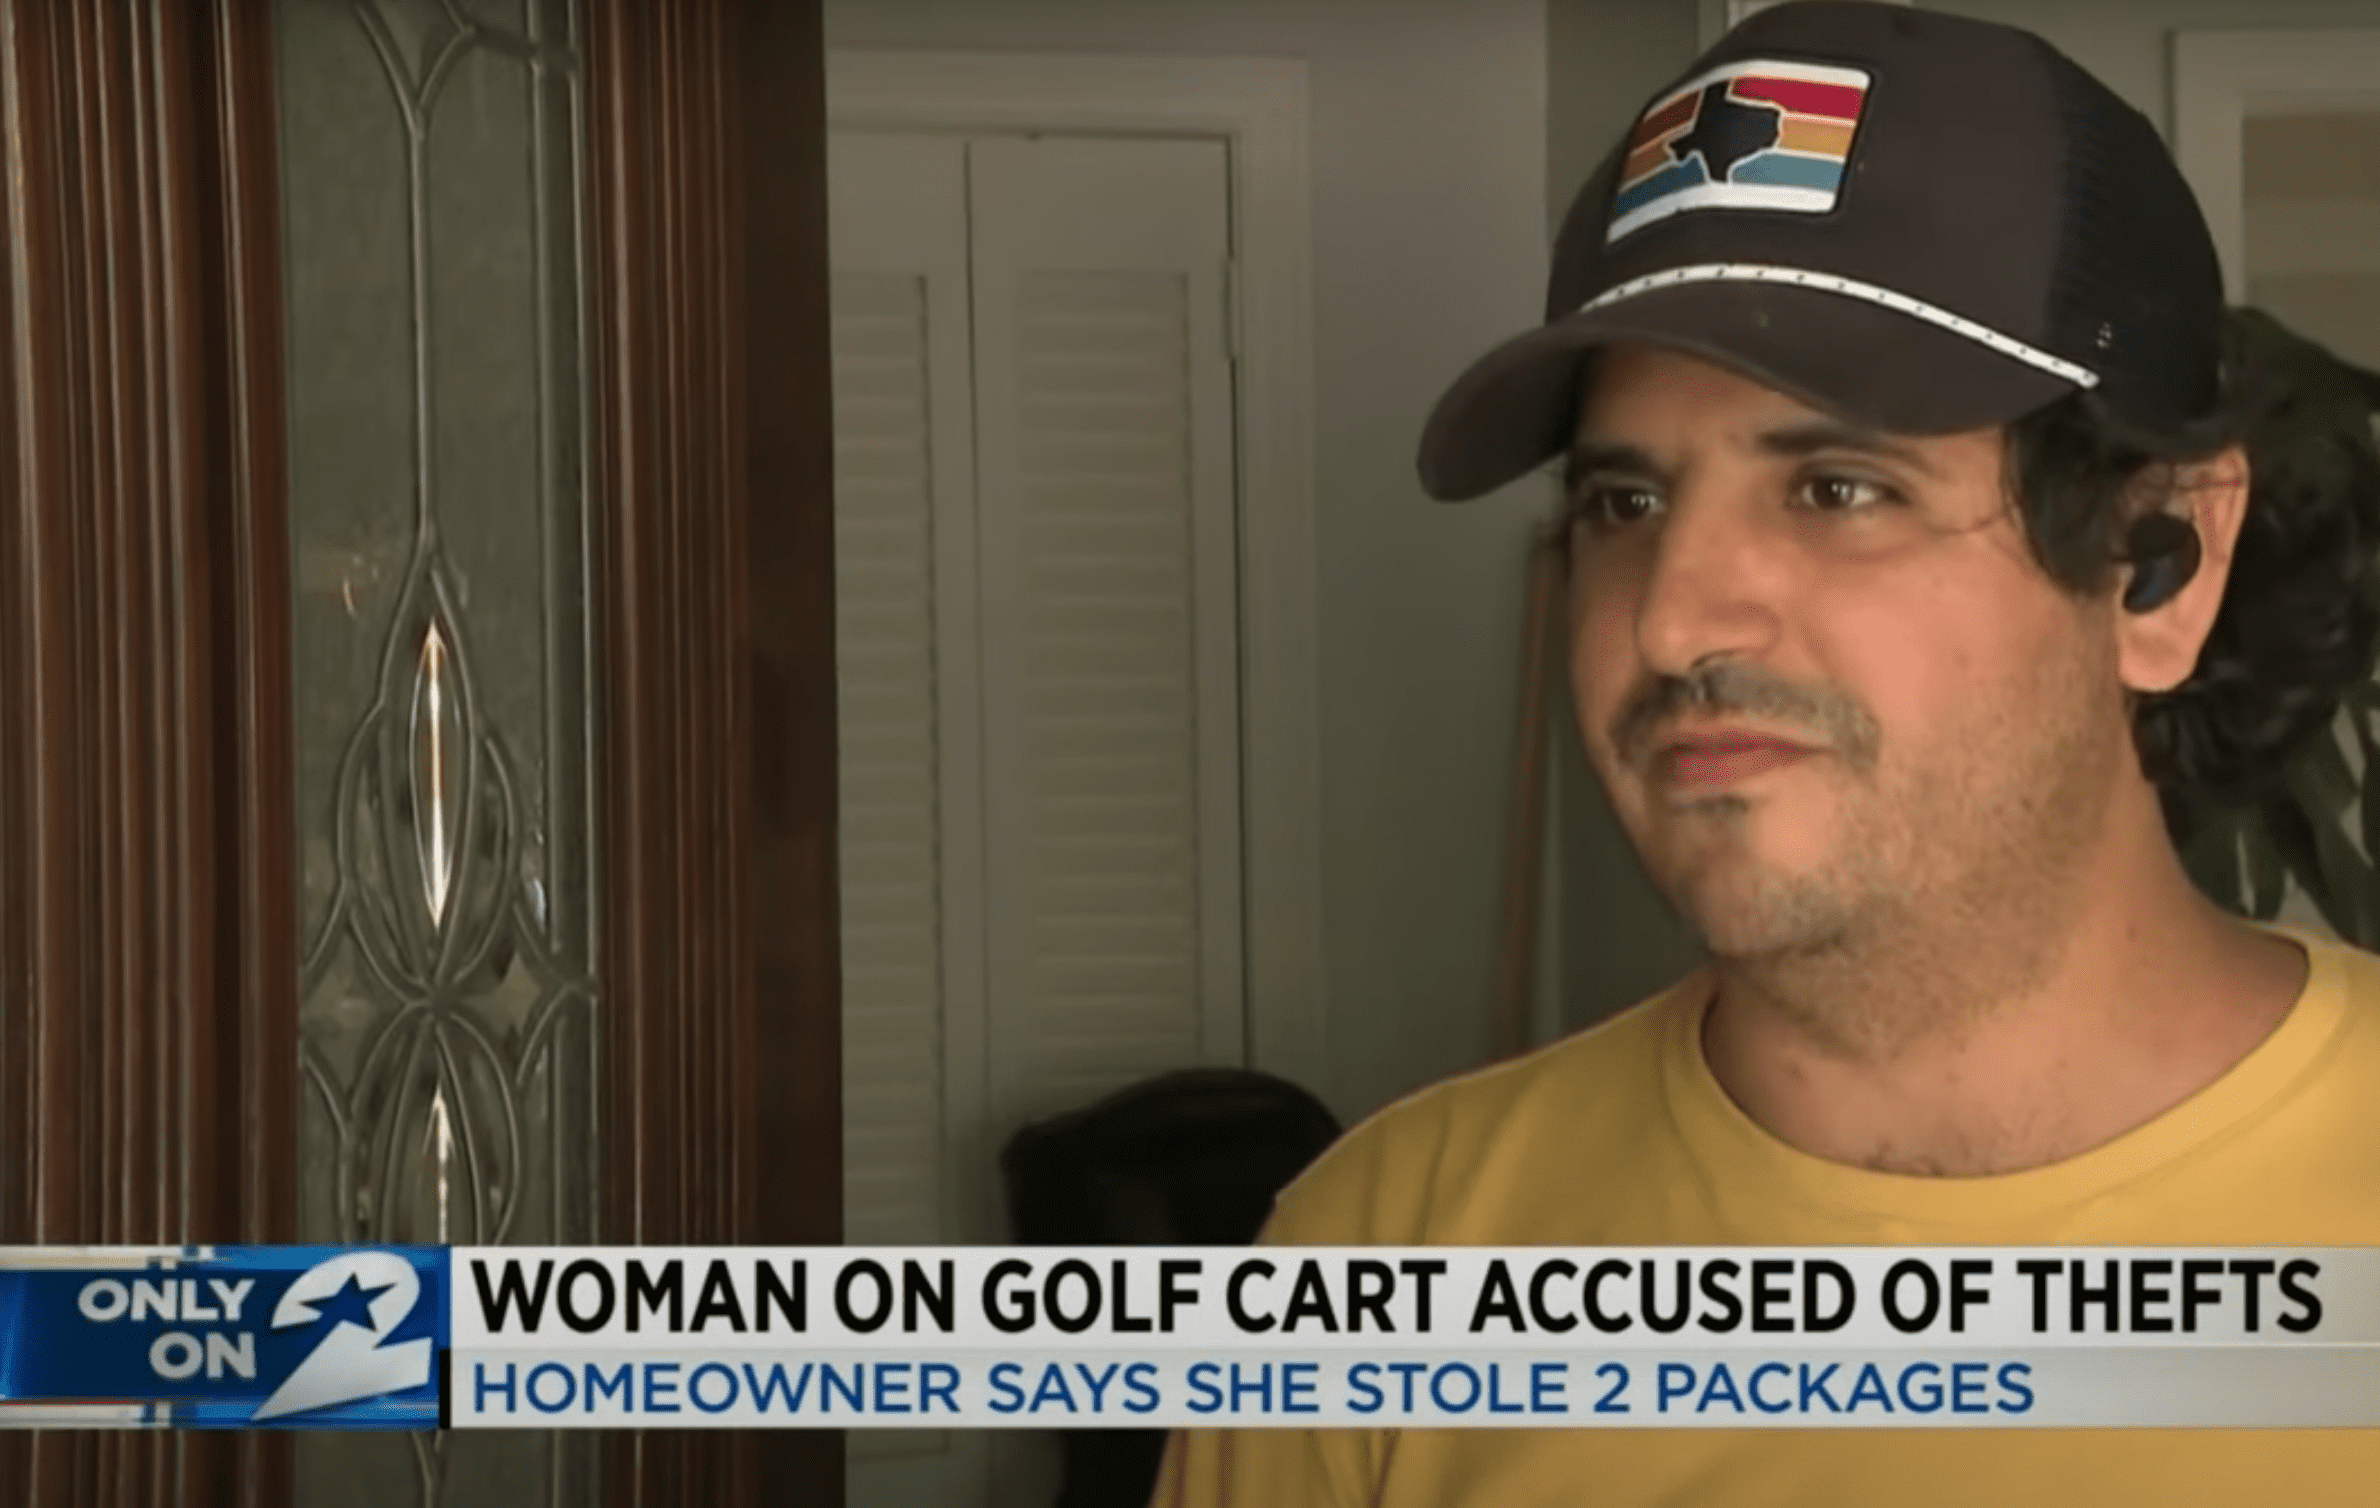 The man who was robbed speaks with news reporters and shares his concerns | Photo: Youtube/KPRC 2 Click2Houston